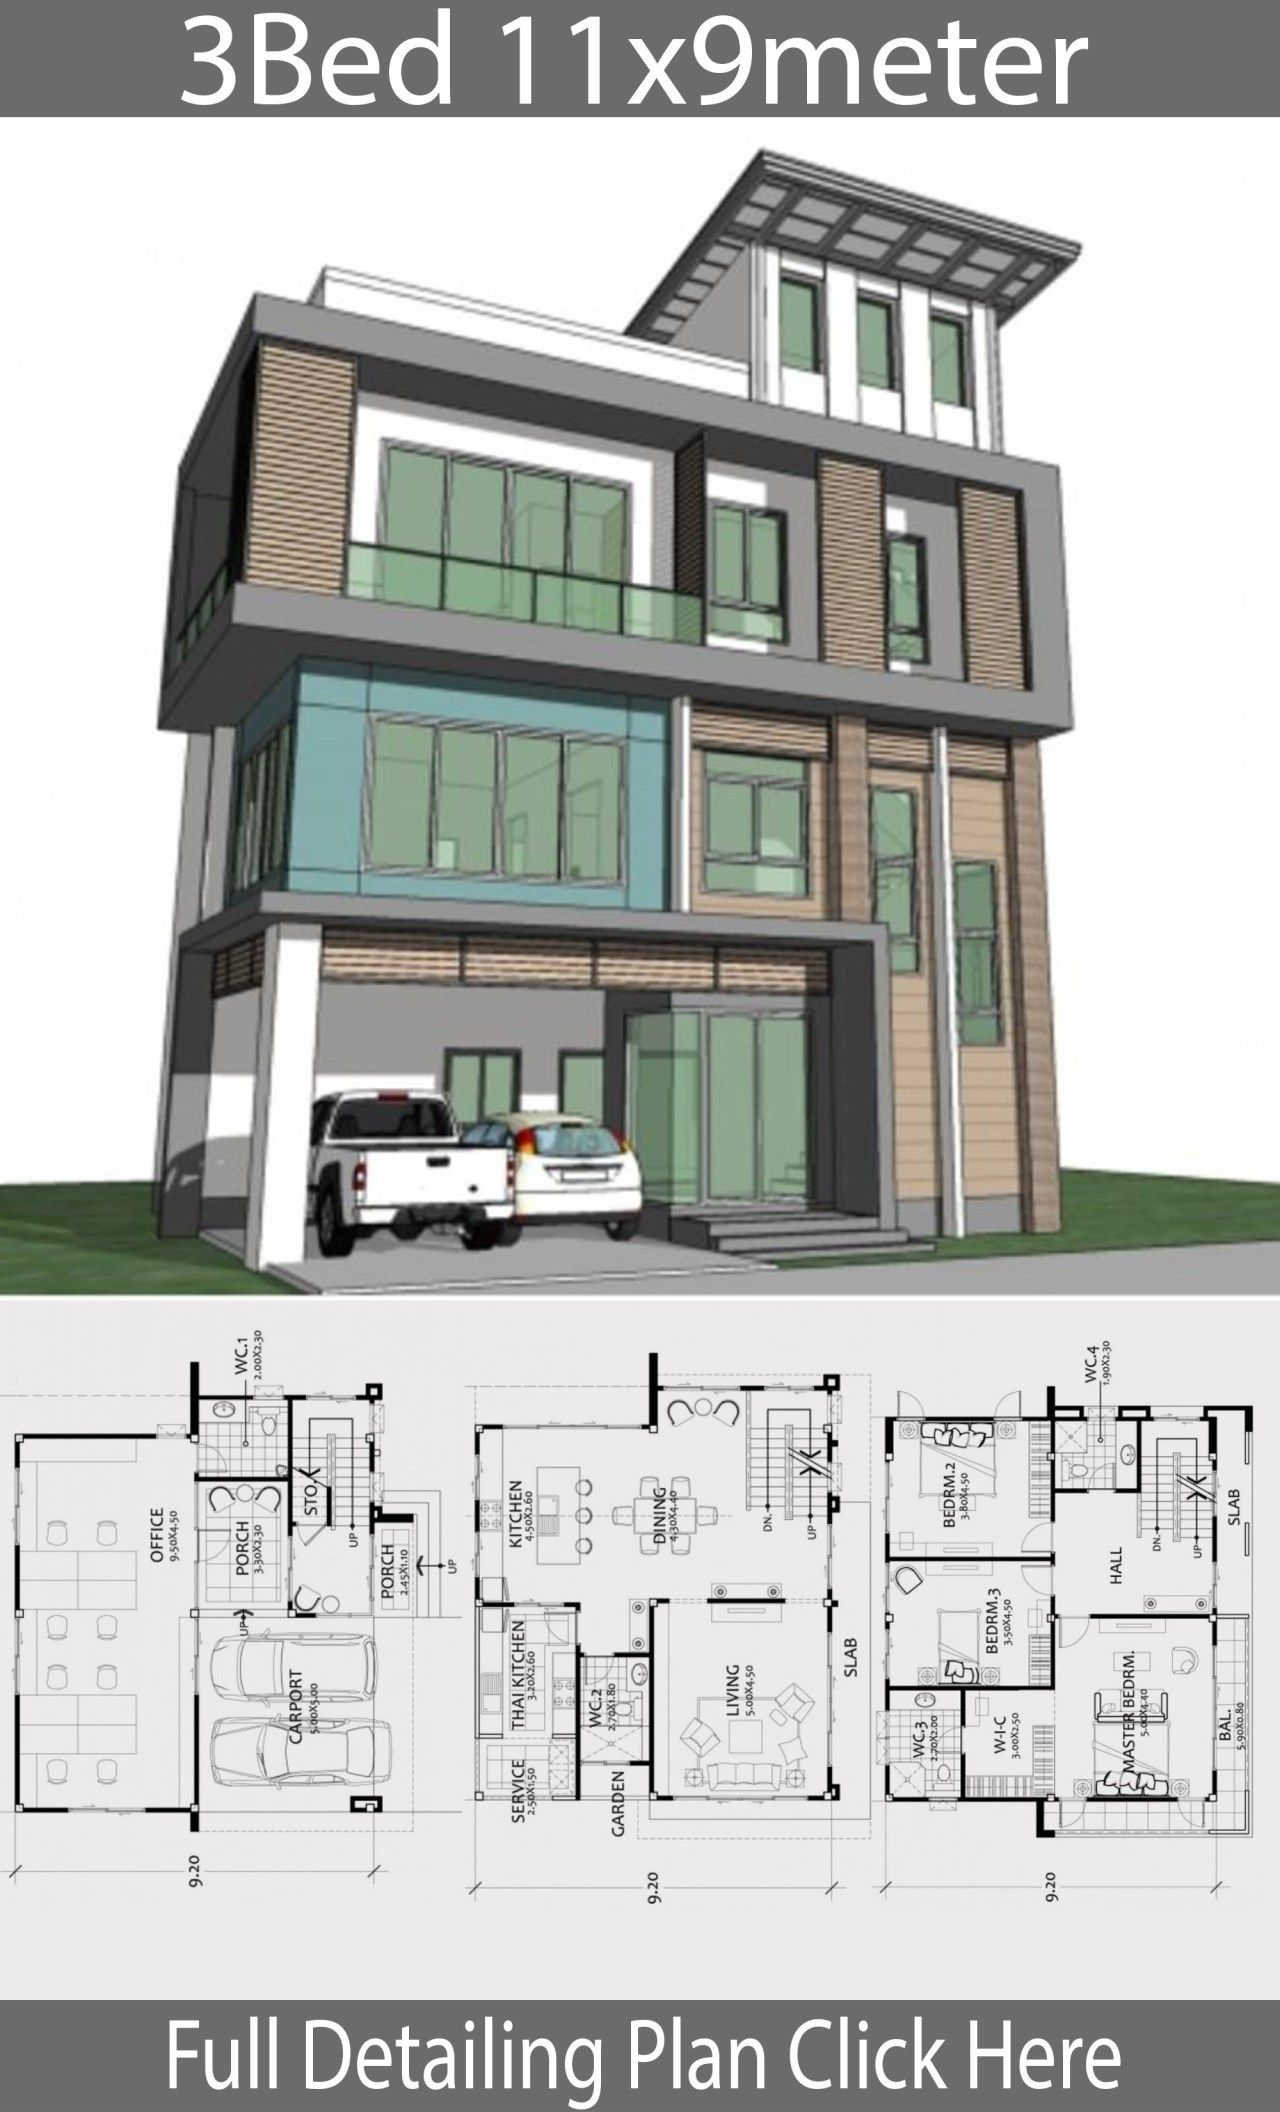 Home Design Plan 11x9m With 3 Bedrooms Home Design Plan Building Plans House Home Design Plans